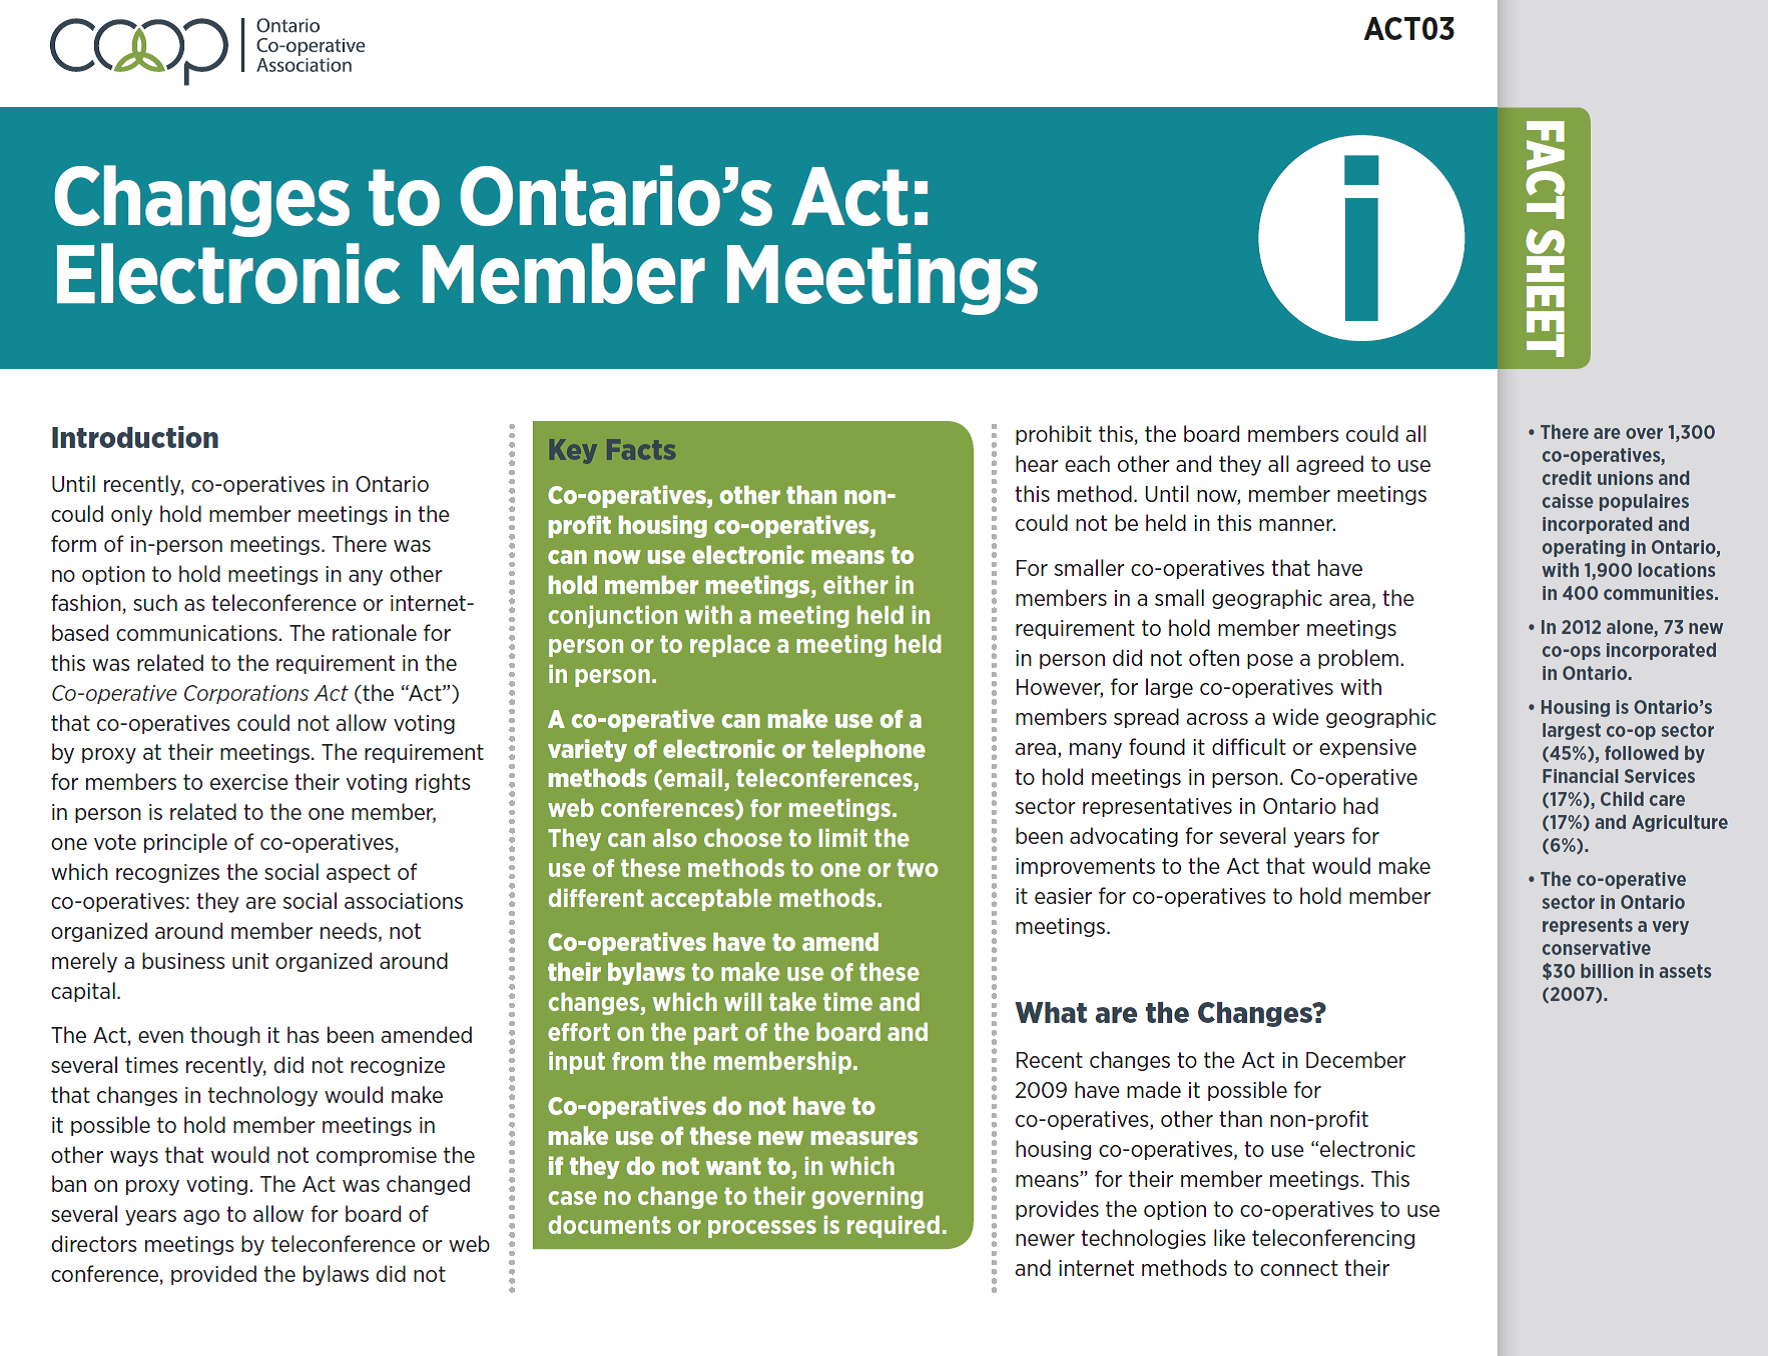 Changes to the Ontario's Act: Electronic Member Meetings